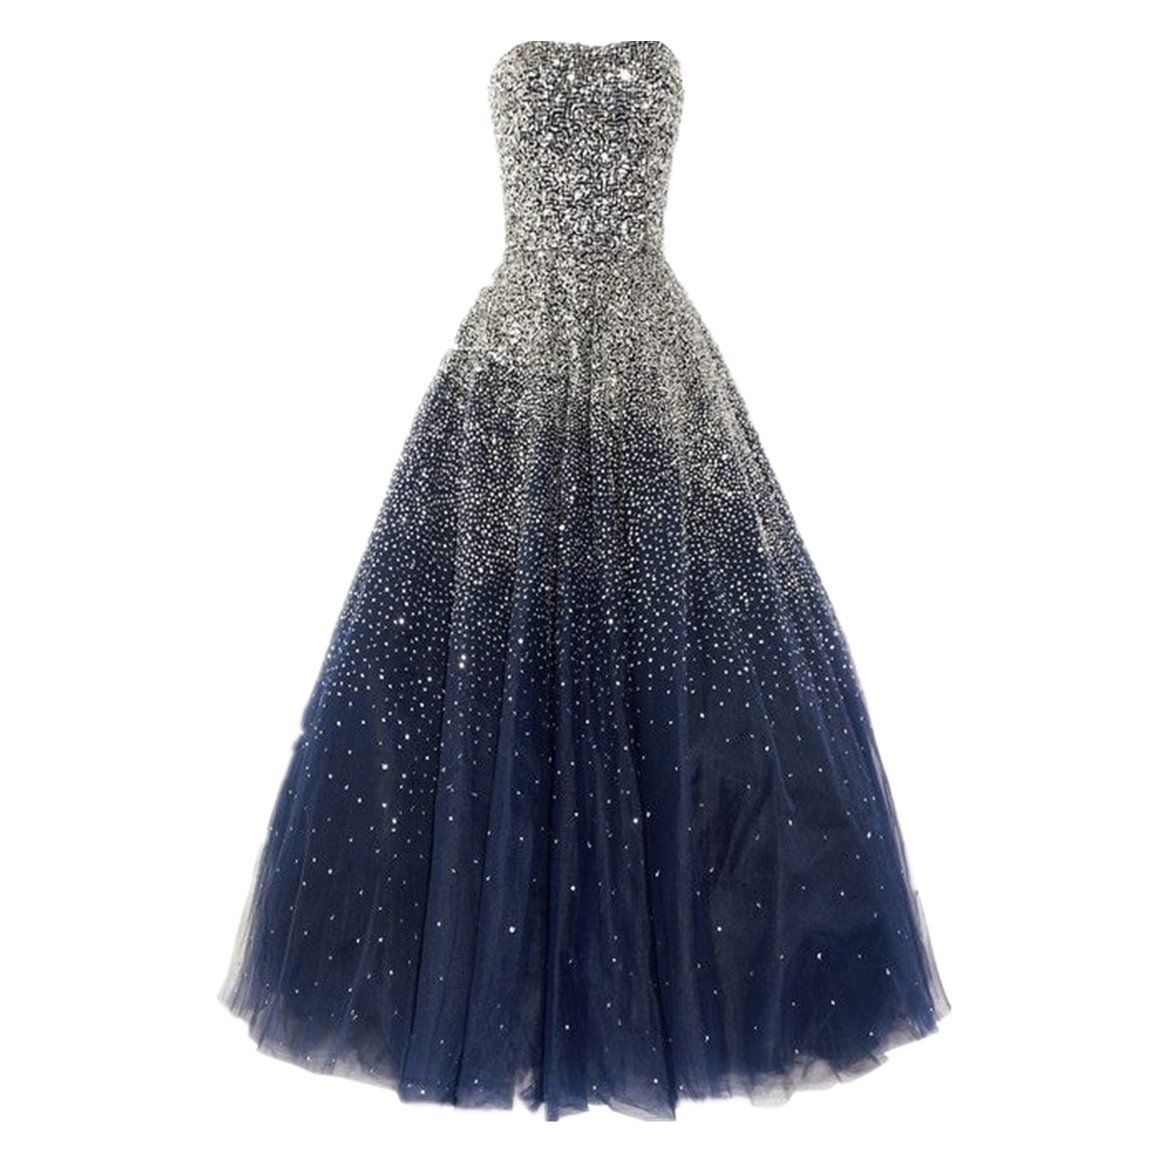 Dressesonline prom dresses long with rhinestones prom gowns for